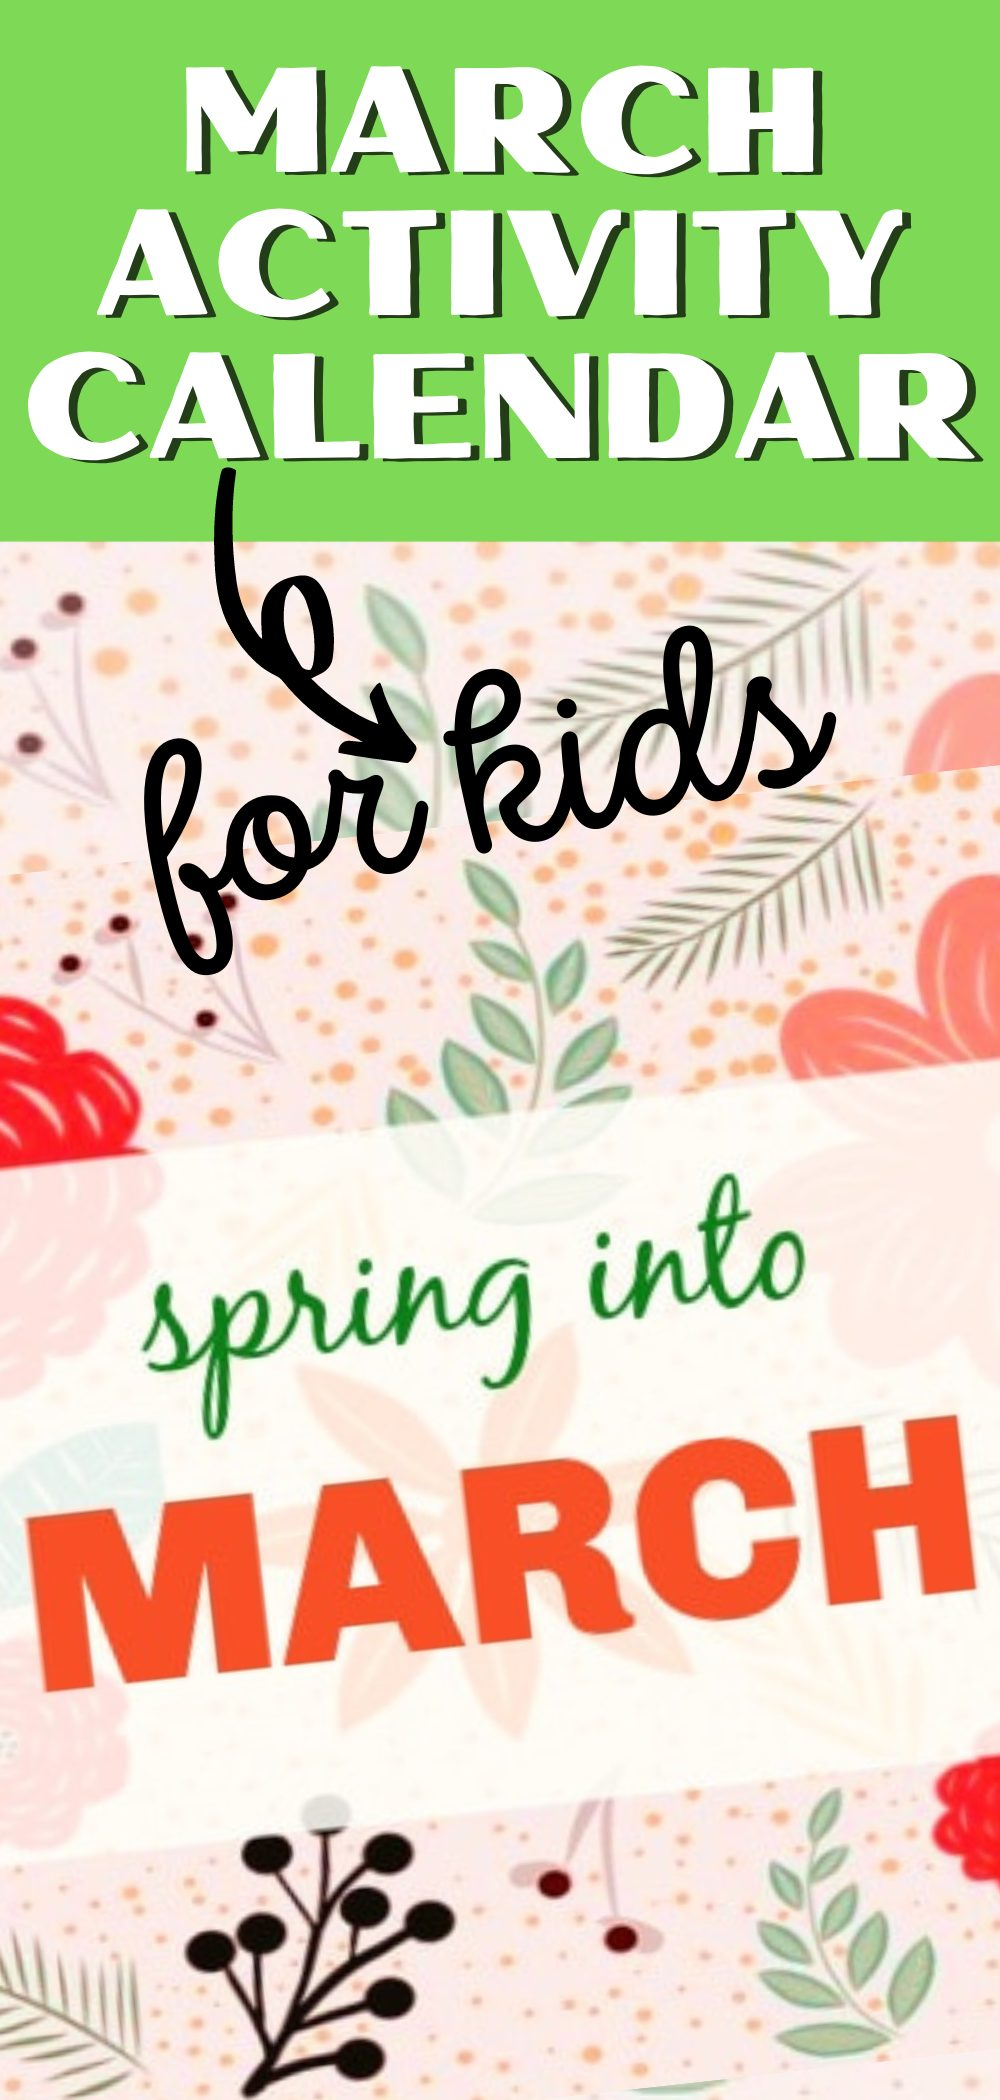 MARCH ACTIVITY CALENDAR FOR KIDS with drawings of flowers and leaves